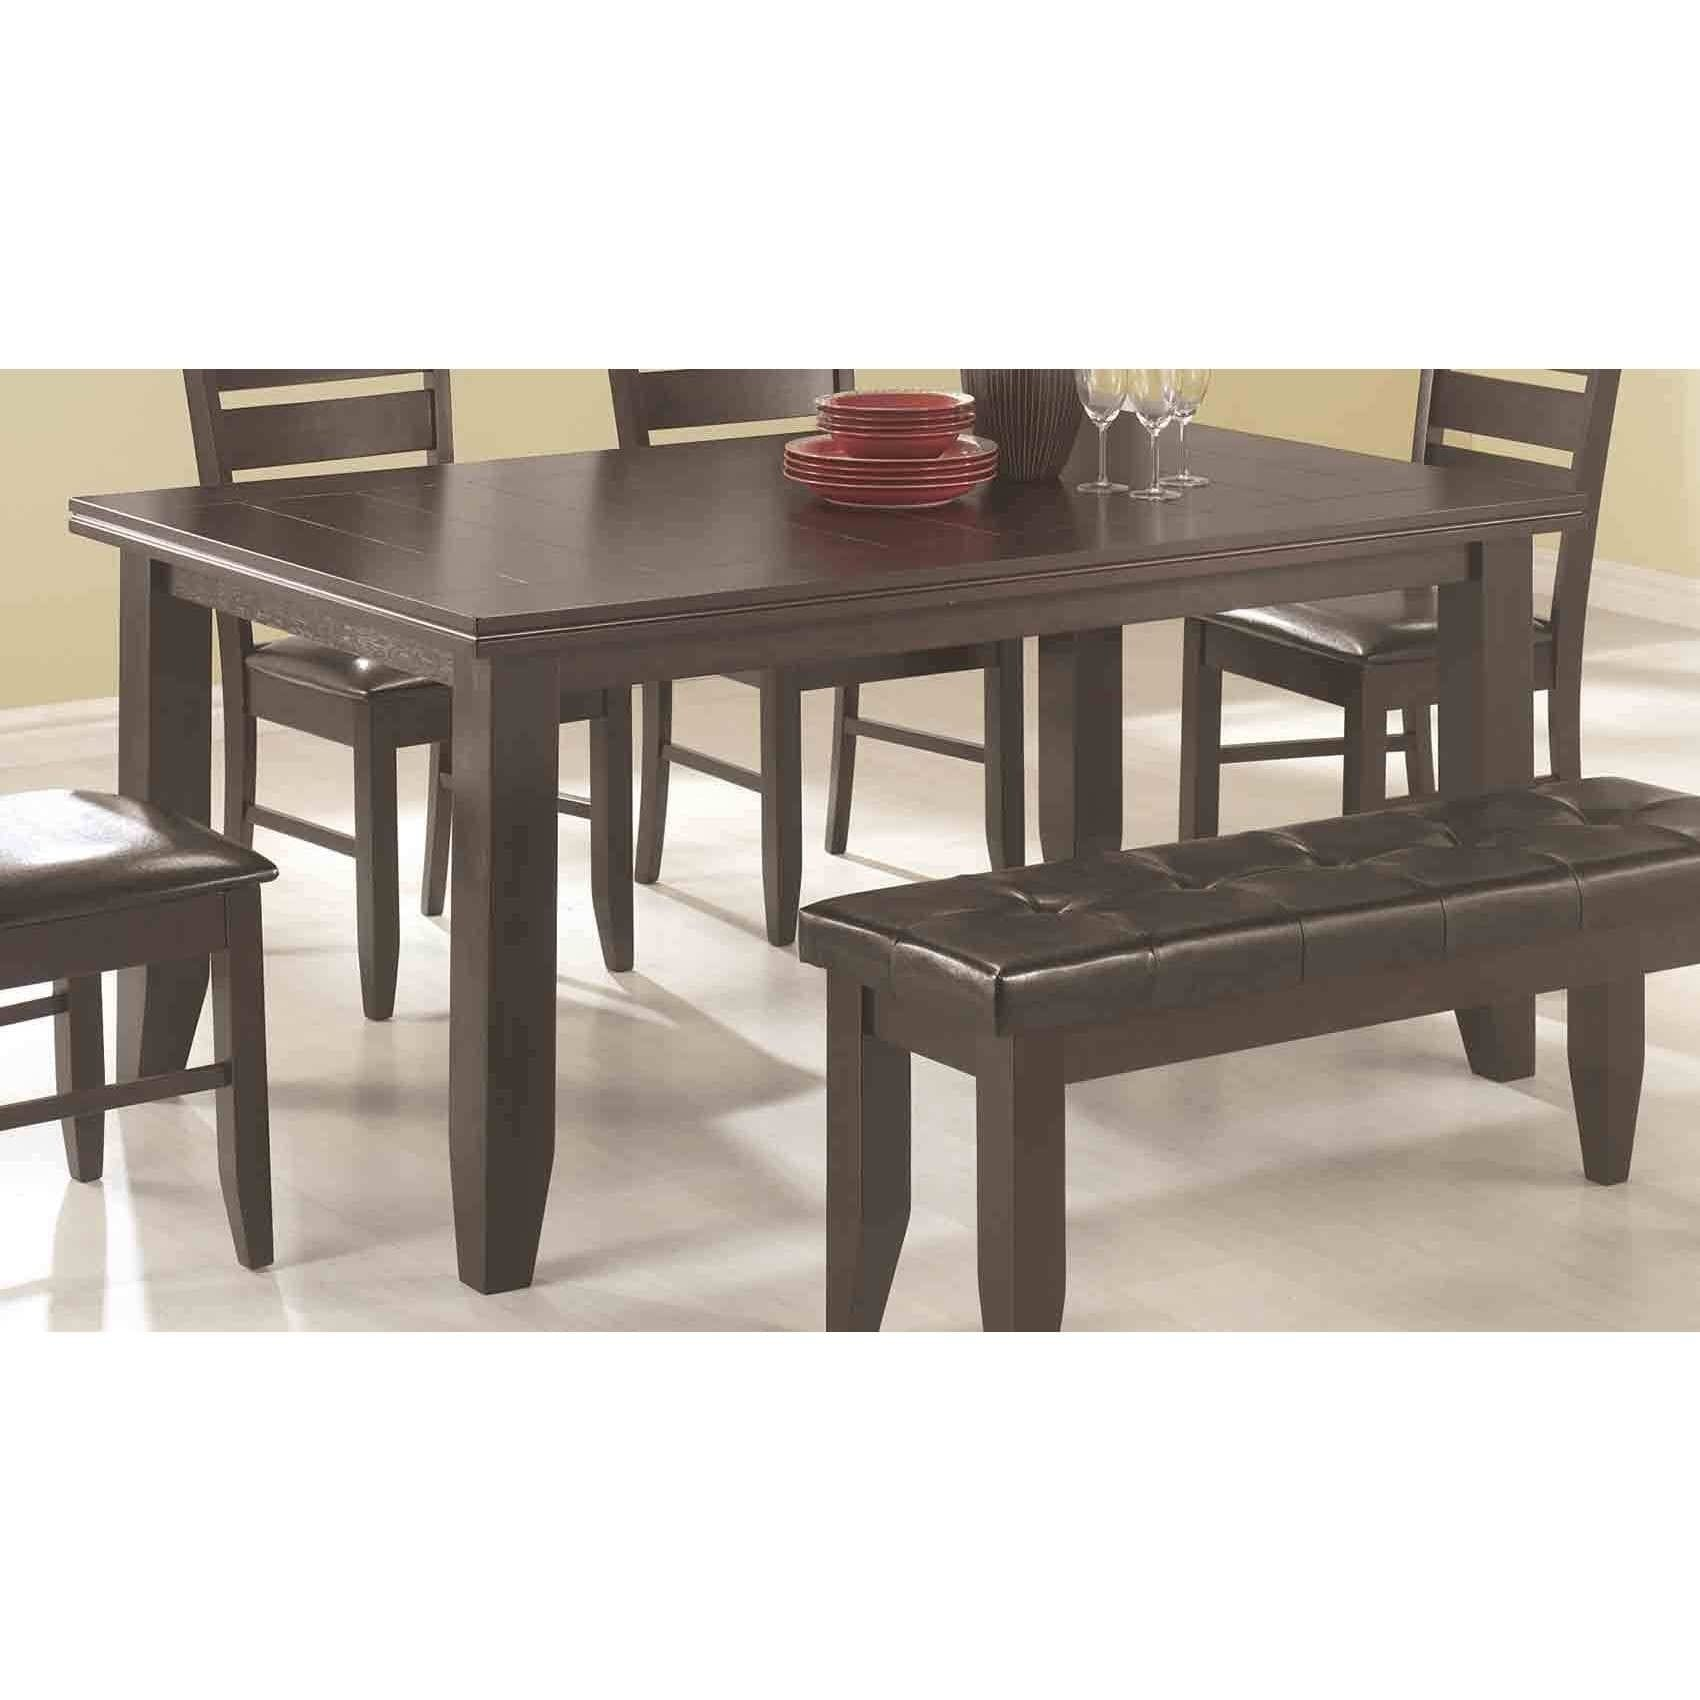 Coaster Company Cappuccino Dining Table 42 X 30 X 66 Overstock 12206469